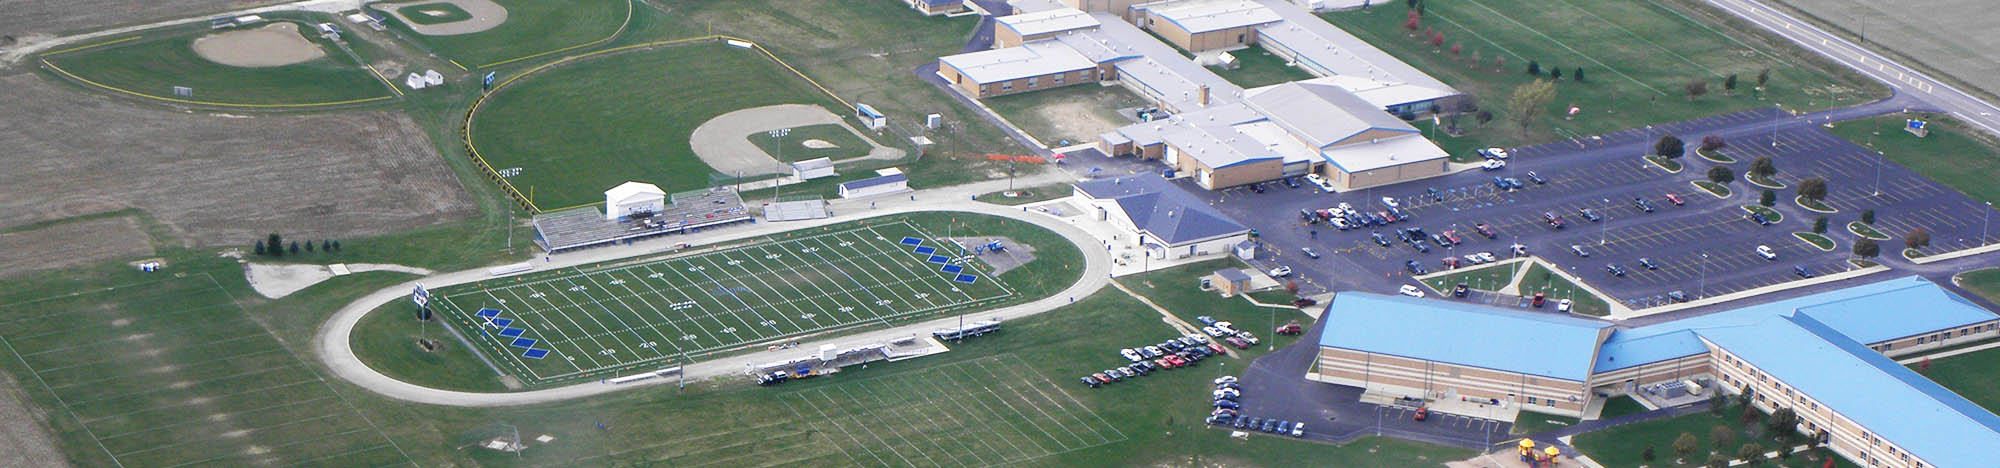 Aerial view of the Western Reserve campus